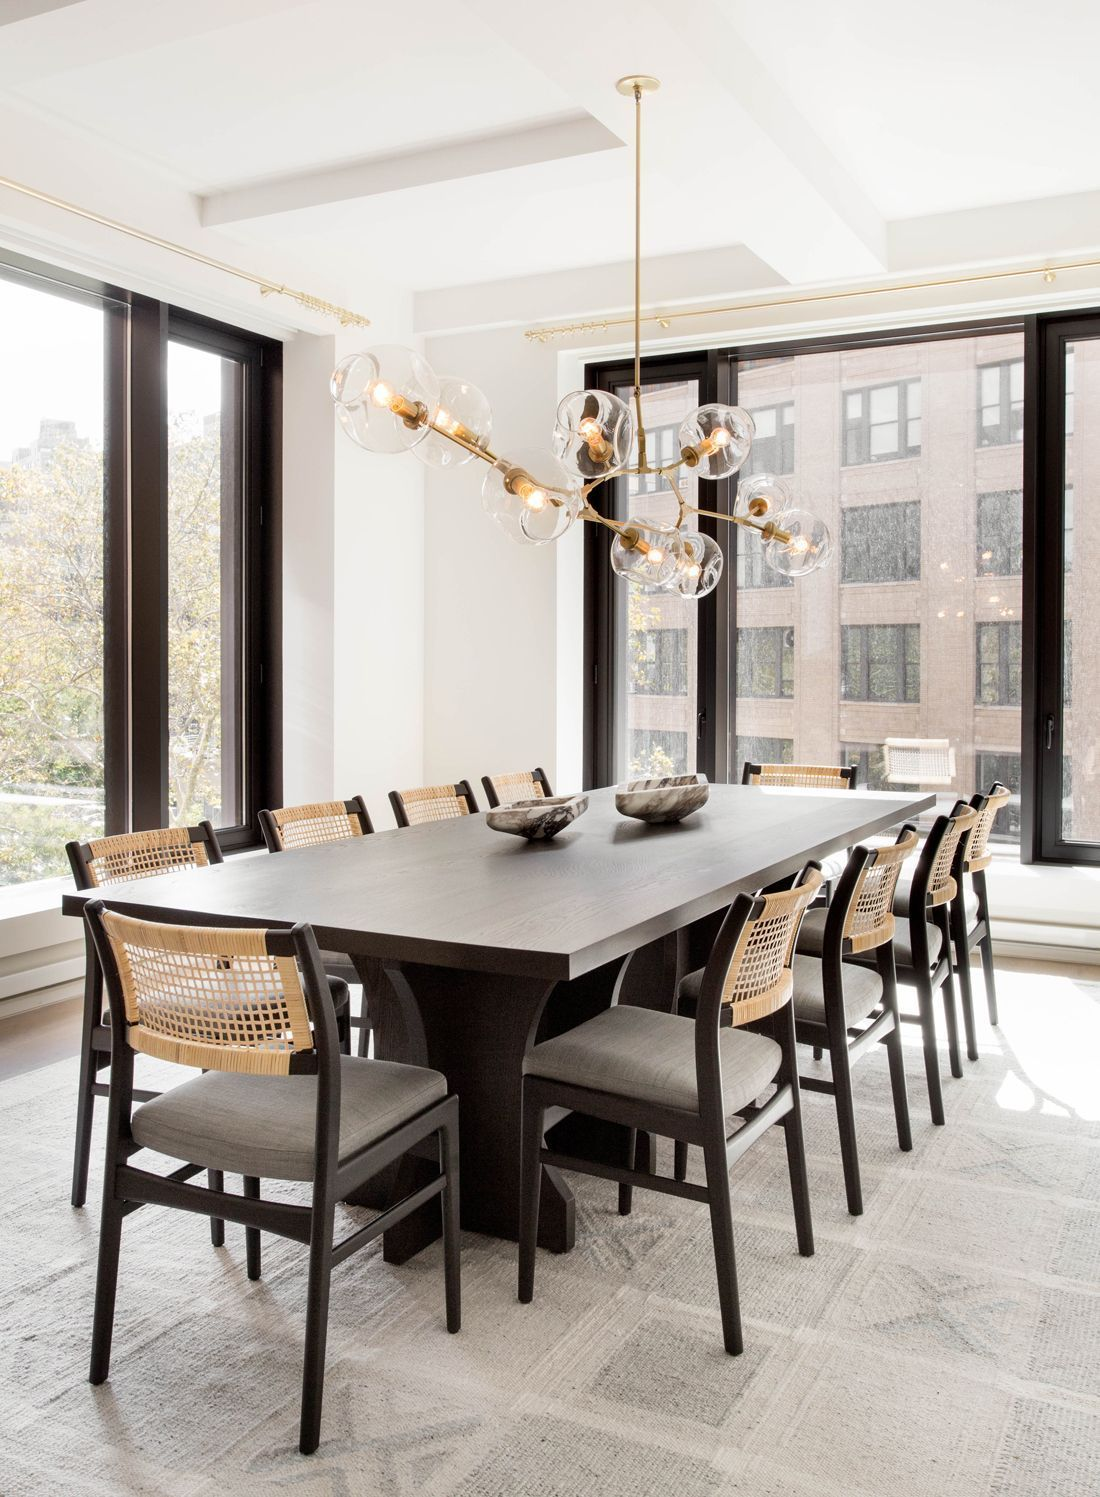 dining room decor ideas that fit all tastes and sizes. from modern